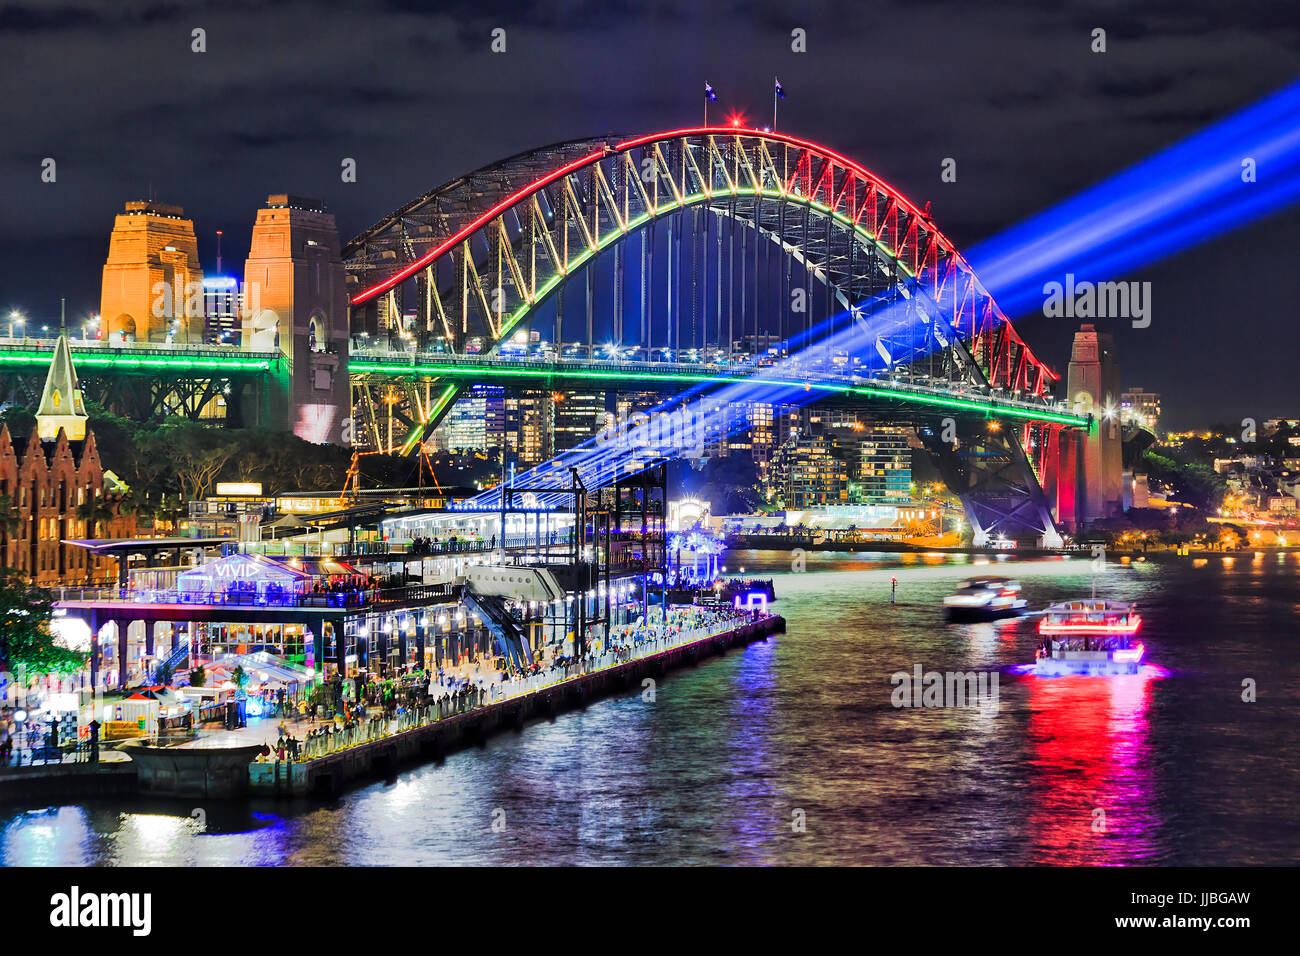 Sydney harbour bridge brightly illuminated and sending blue beams of projector light during Vivid Sydney light and - Stock Image